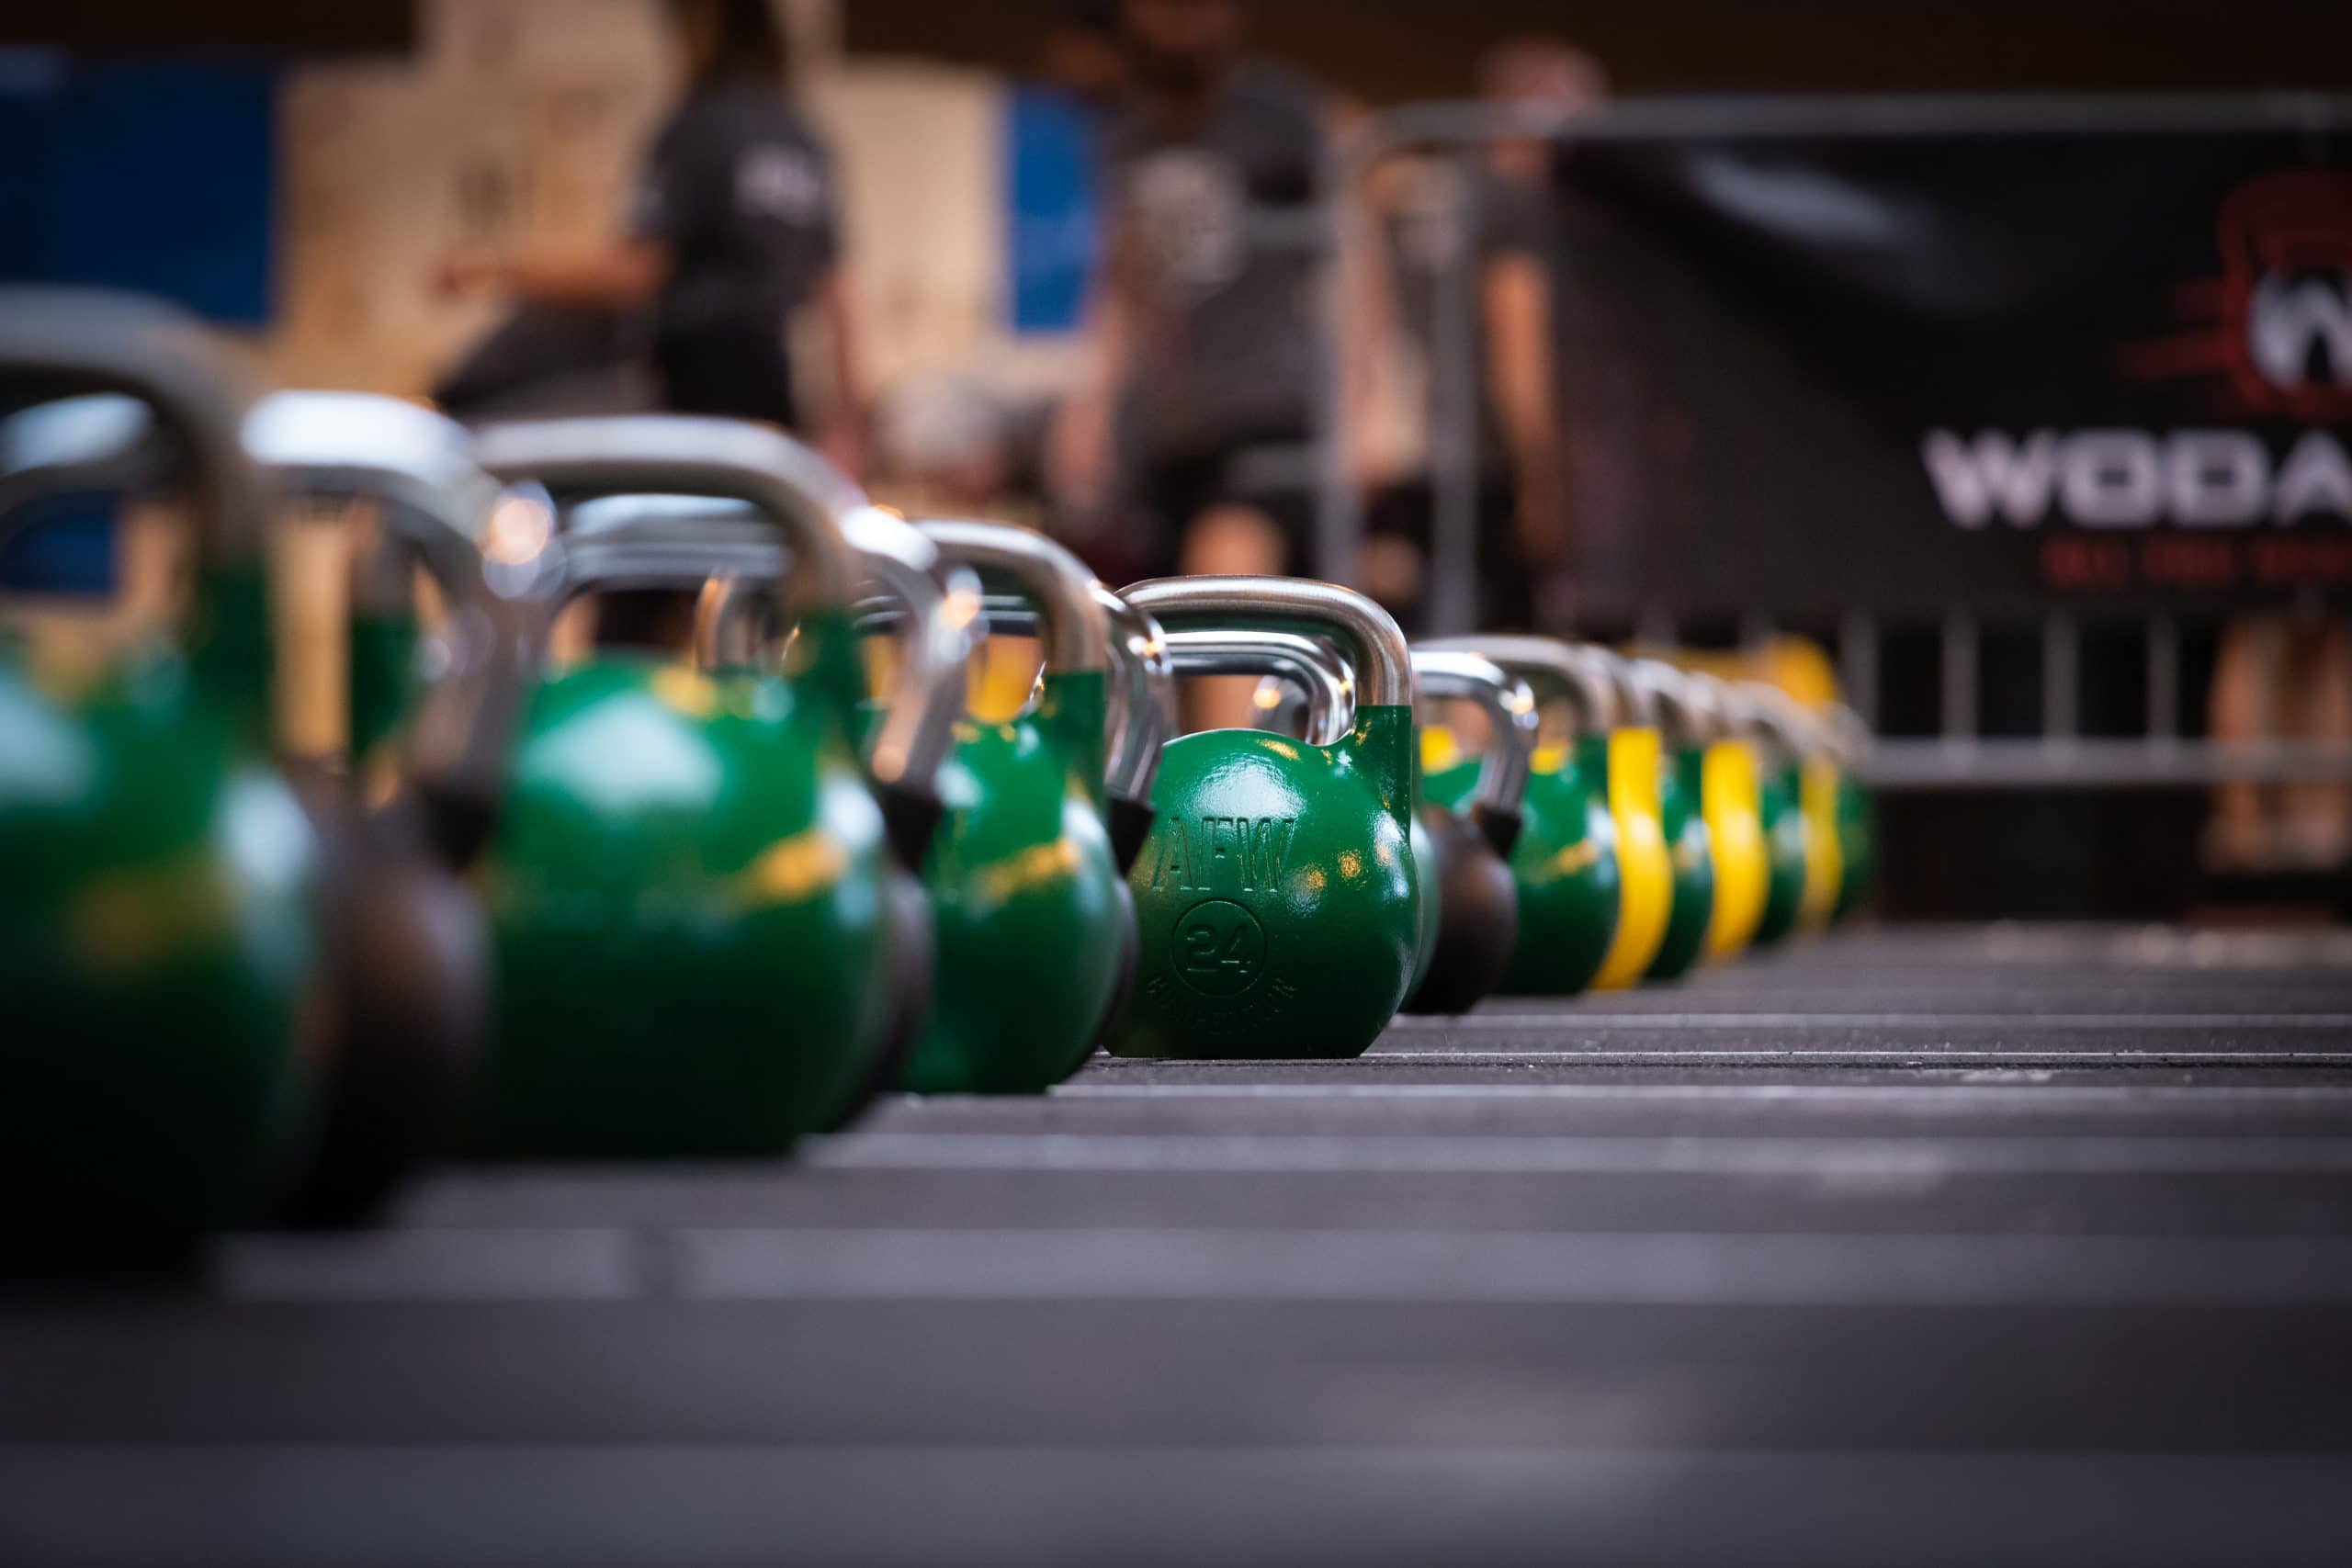 Kettlebell Featured Image